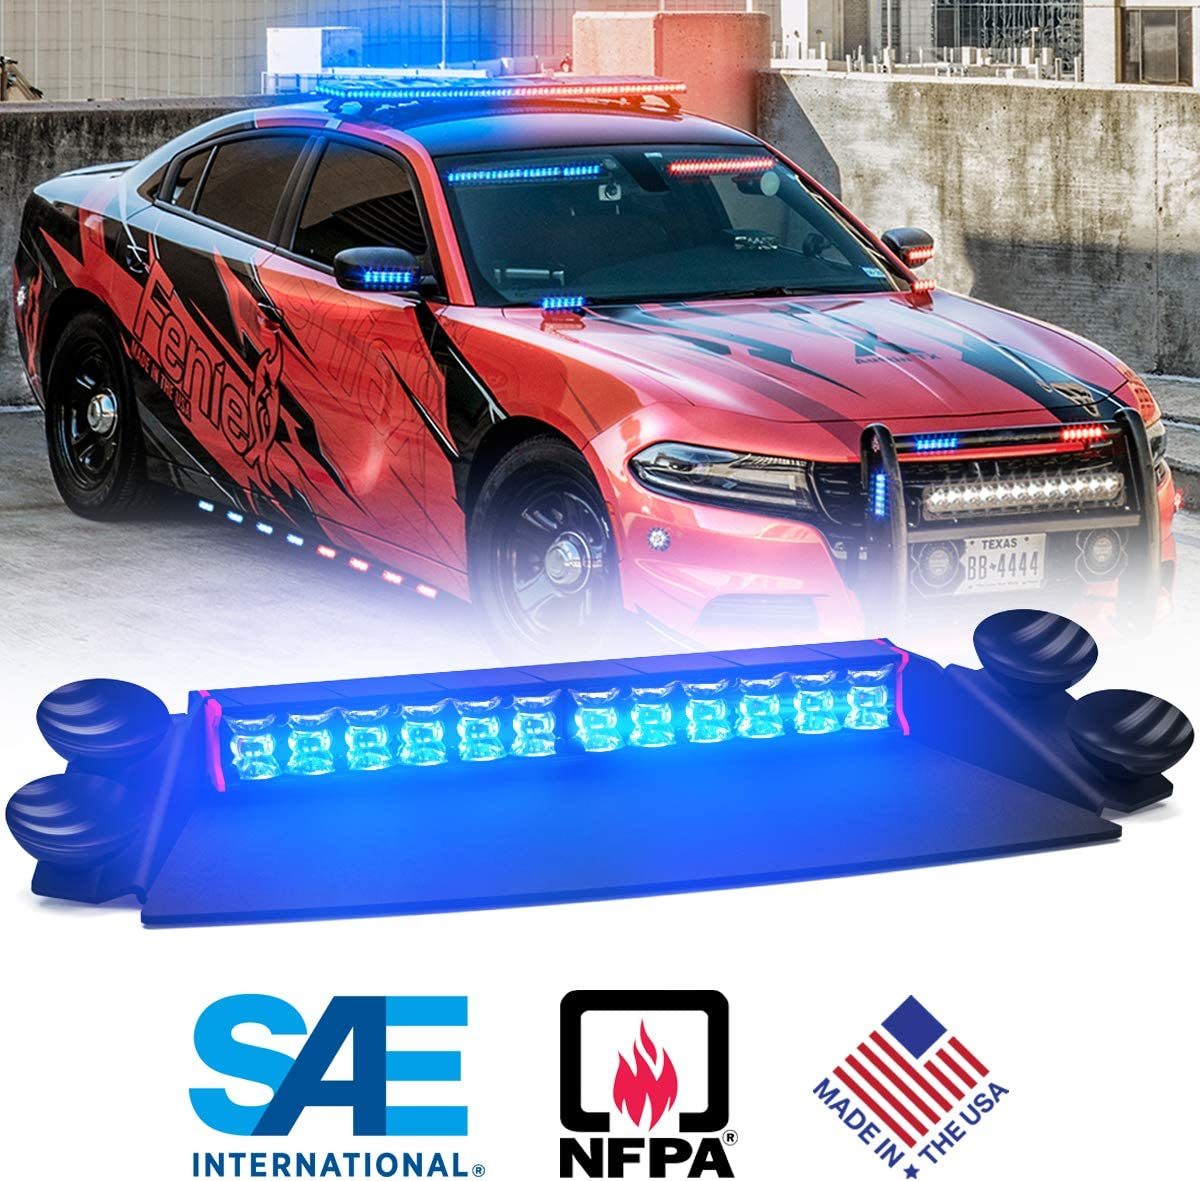 180/° Wide Beam, Red-Blue Feniex Fusion 2X Deck /& Dash LED Light Single Color